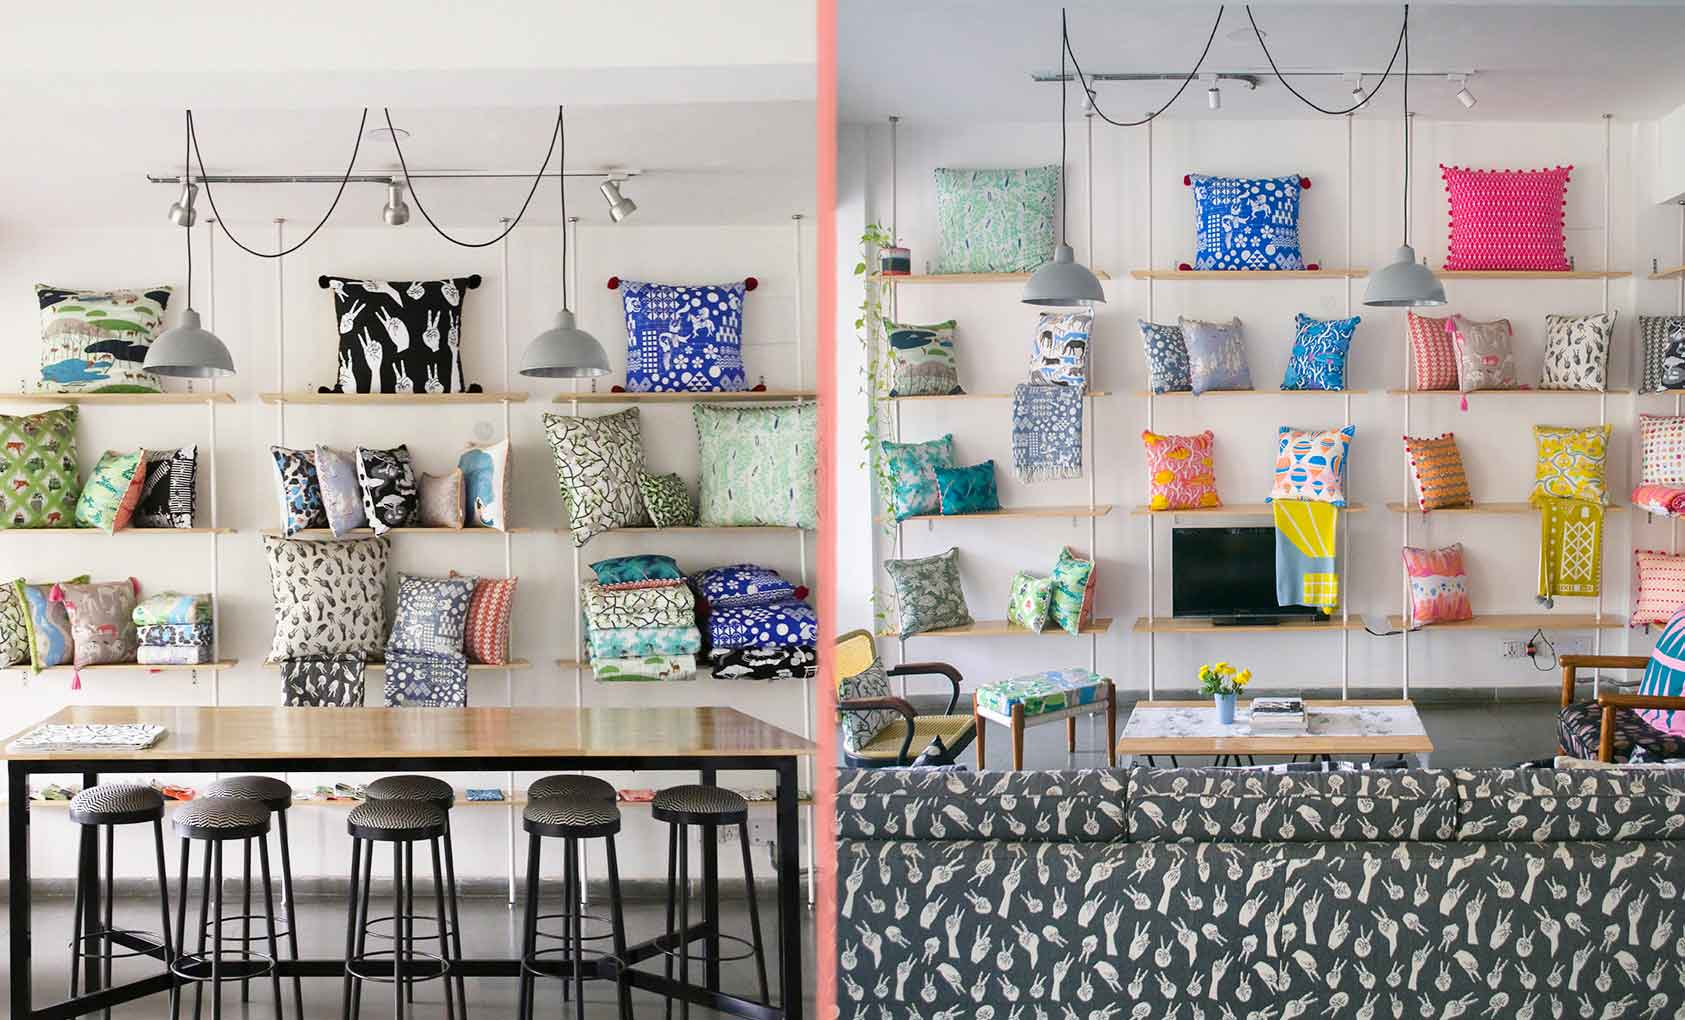 Evolving Style: From Studio Space to Home Base, Design*Sponge